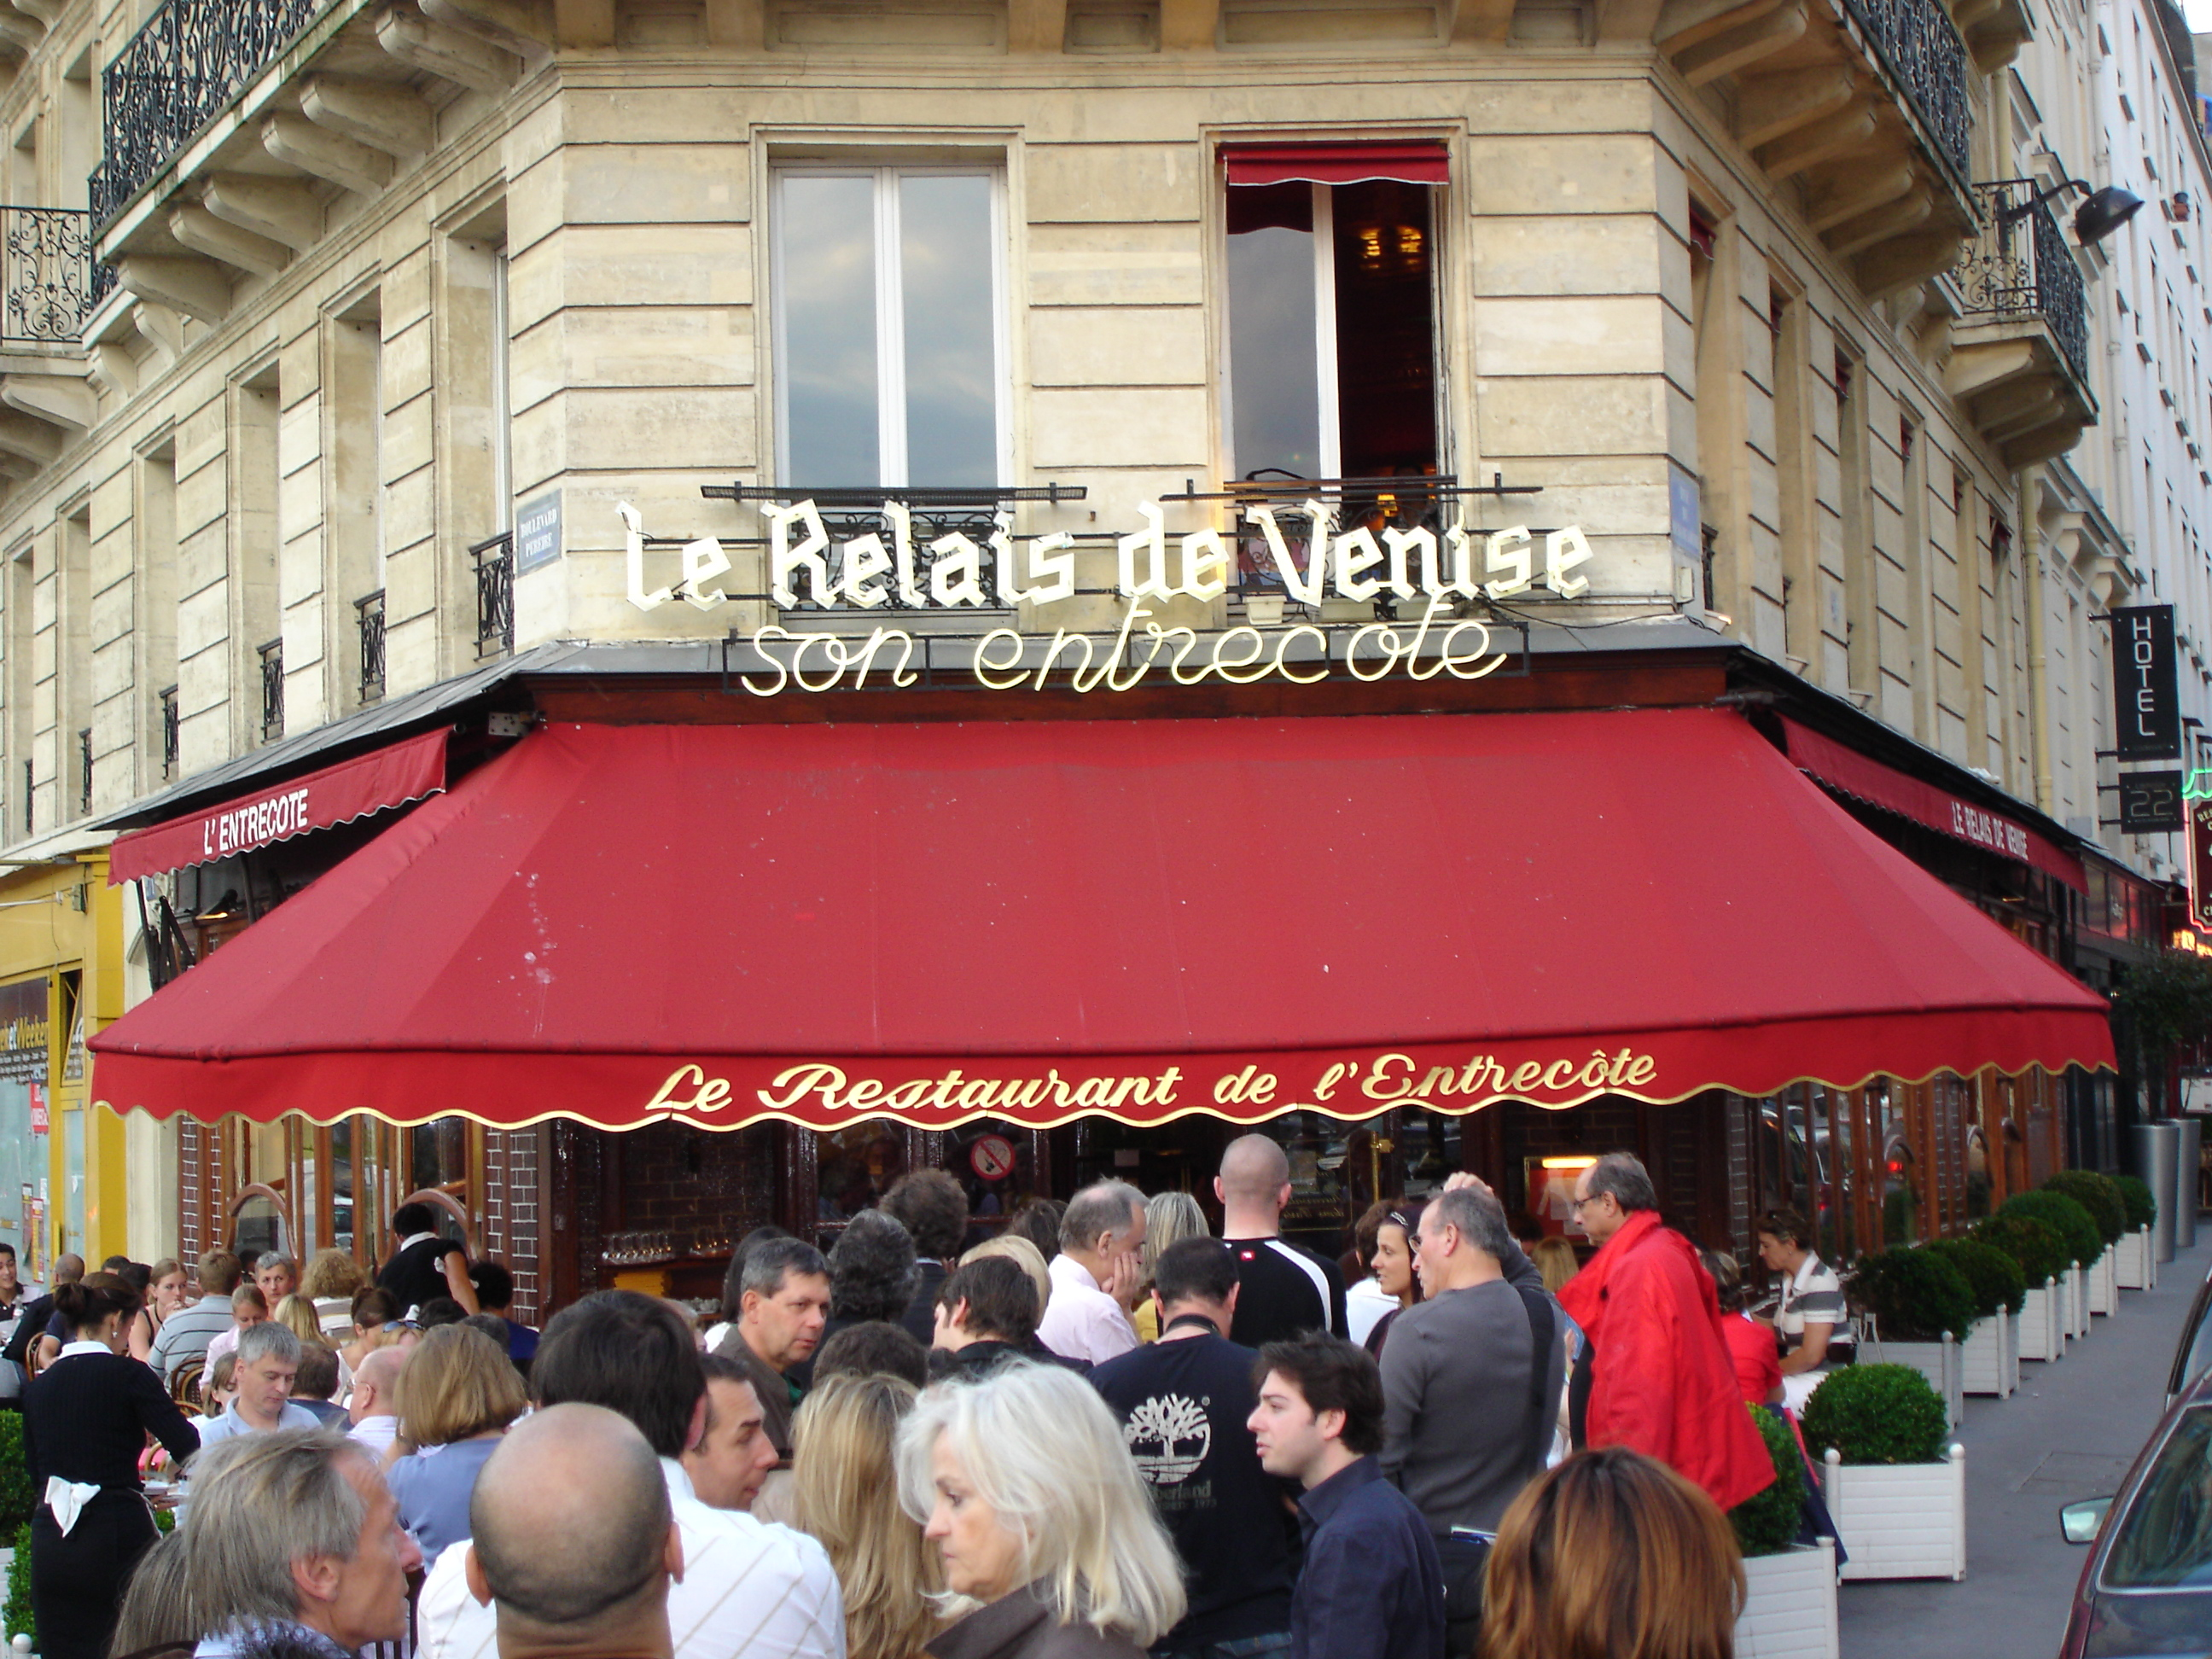 Restaurants cafes le relais de venise 39 39 l 39 entrecote 39 39 for Porte maillot in paris